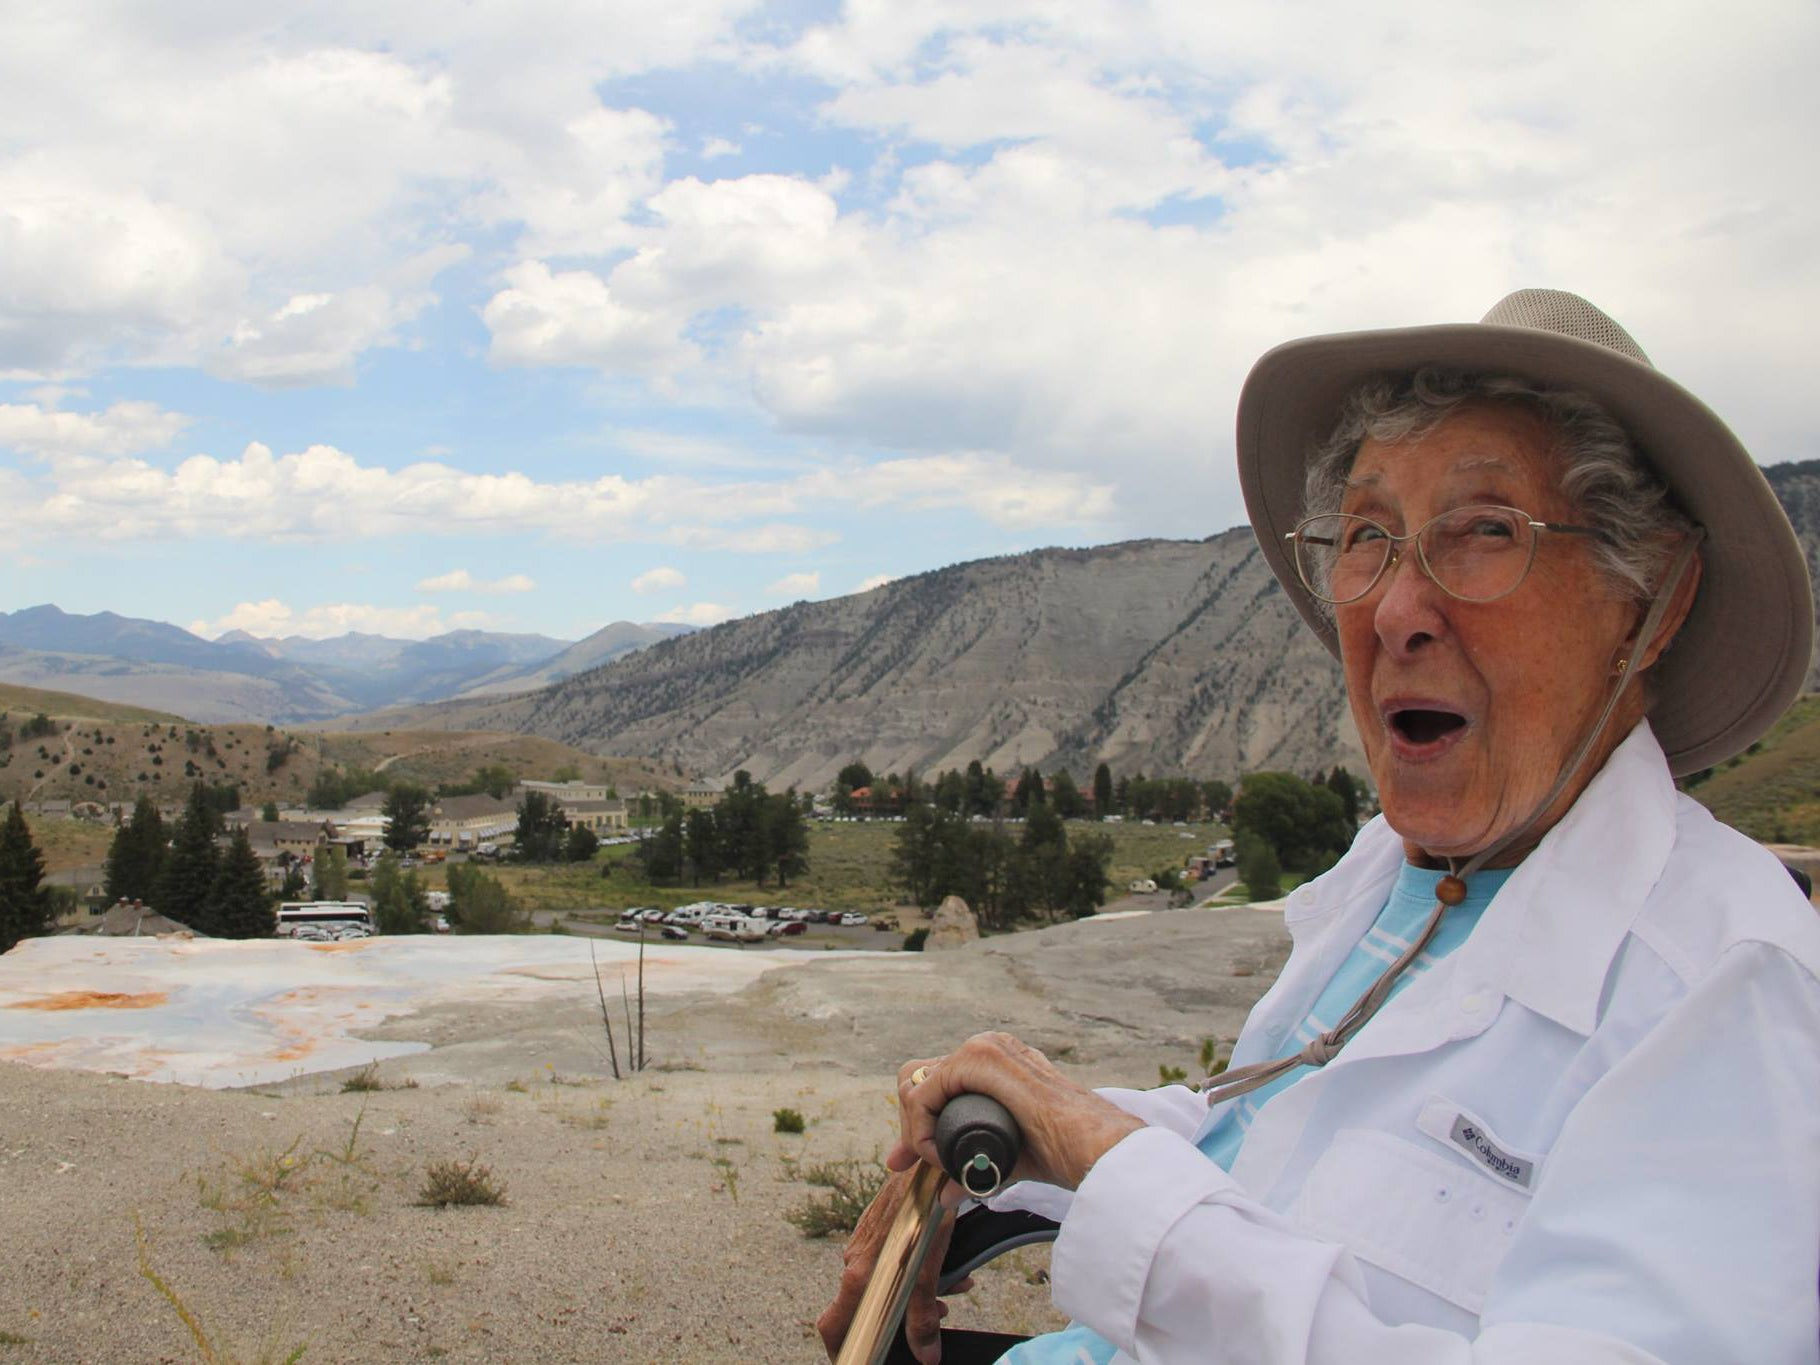 independent.co.uk - 91-year-old who inspired thousands by skipping chemotherapy to go on end of life road trip dies